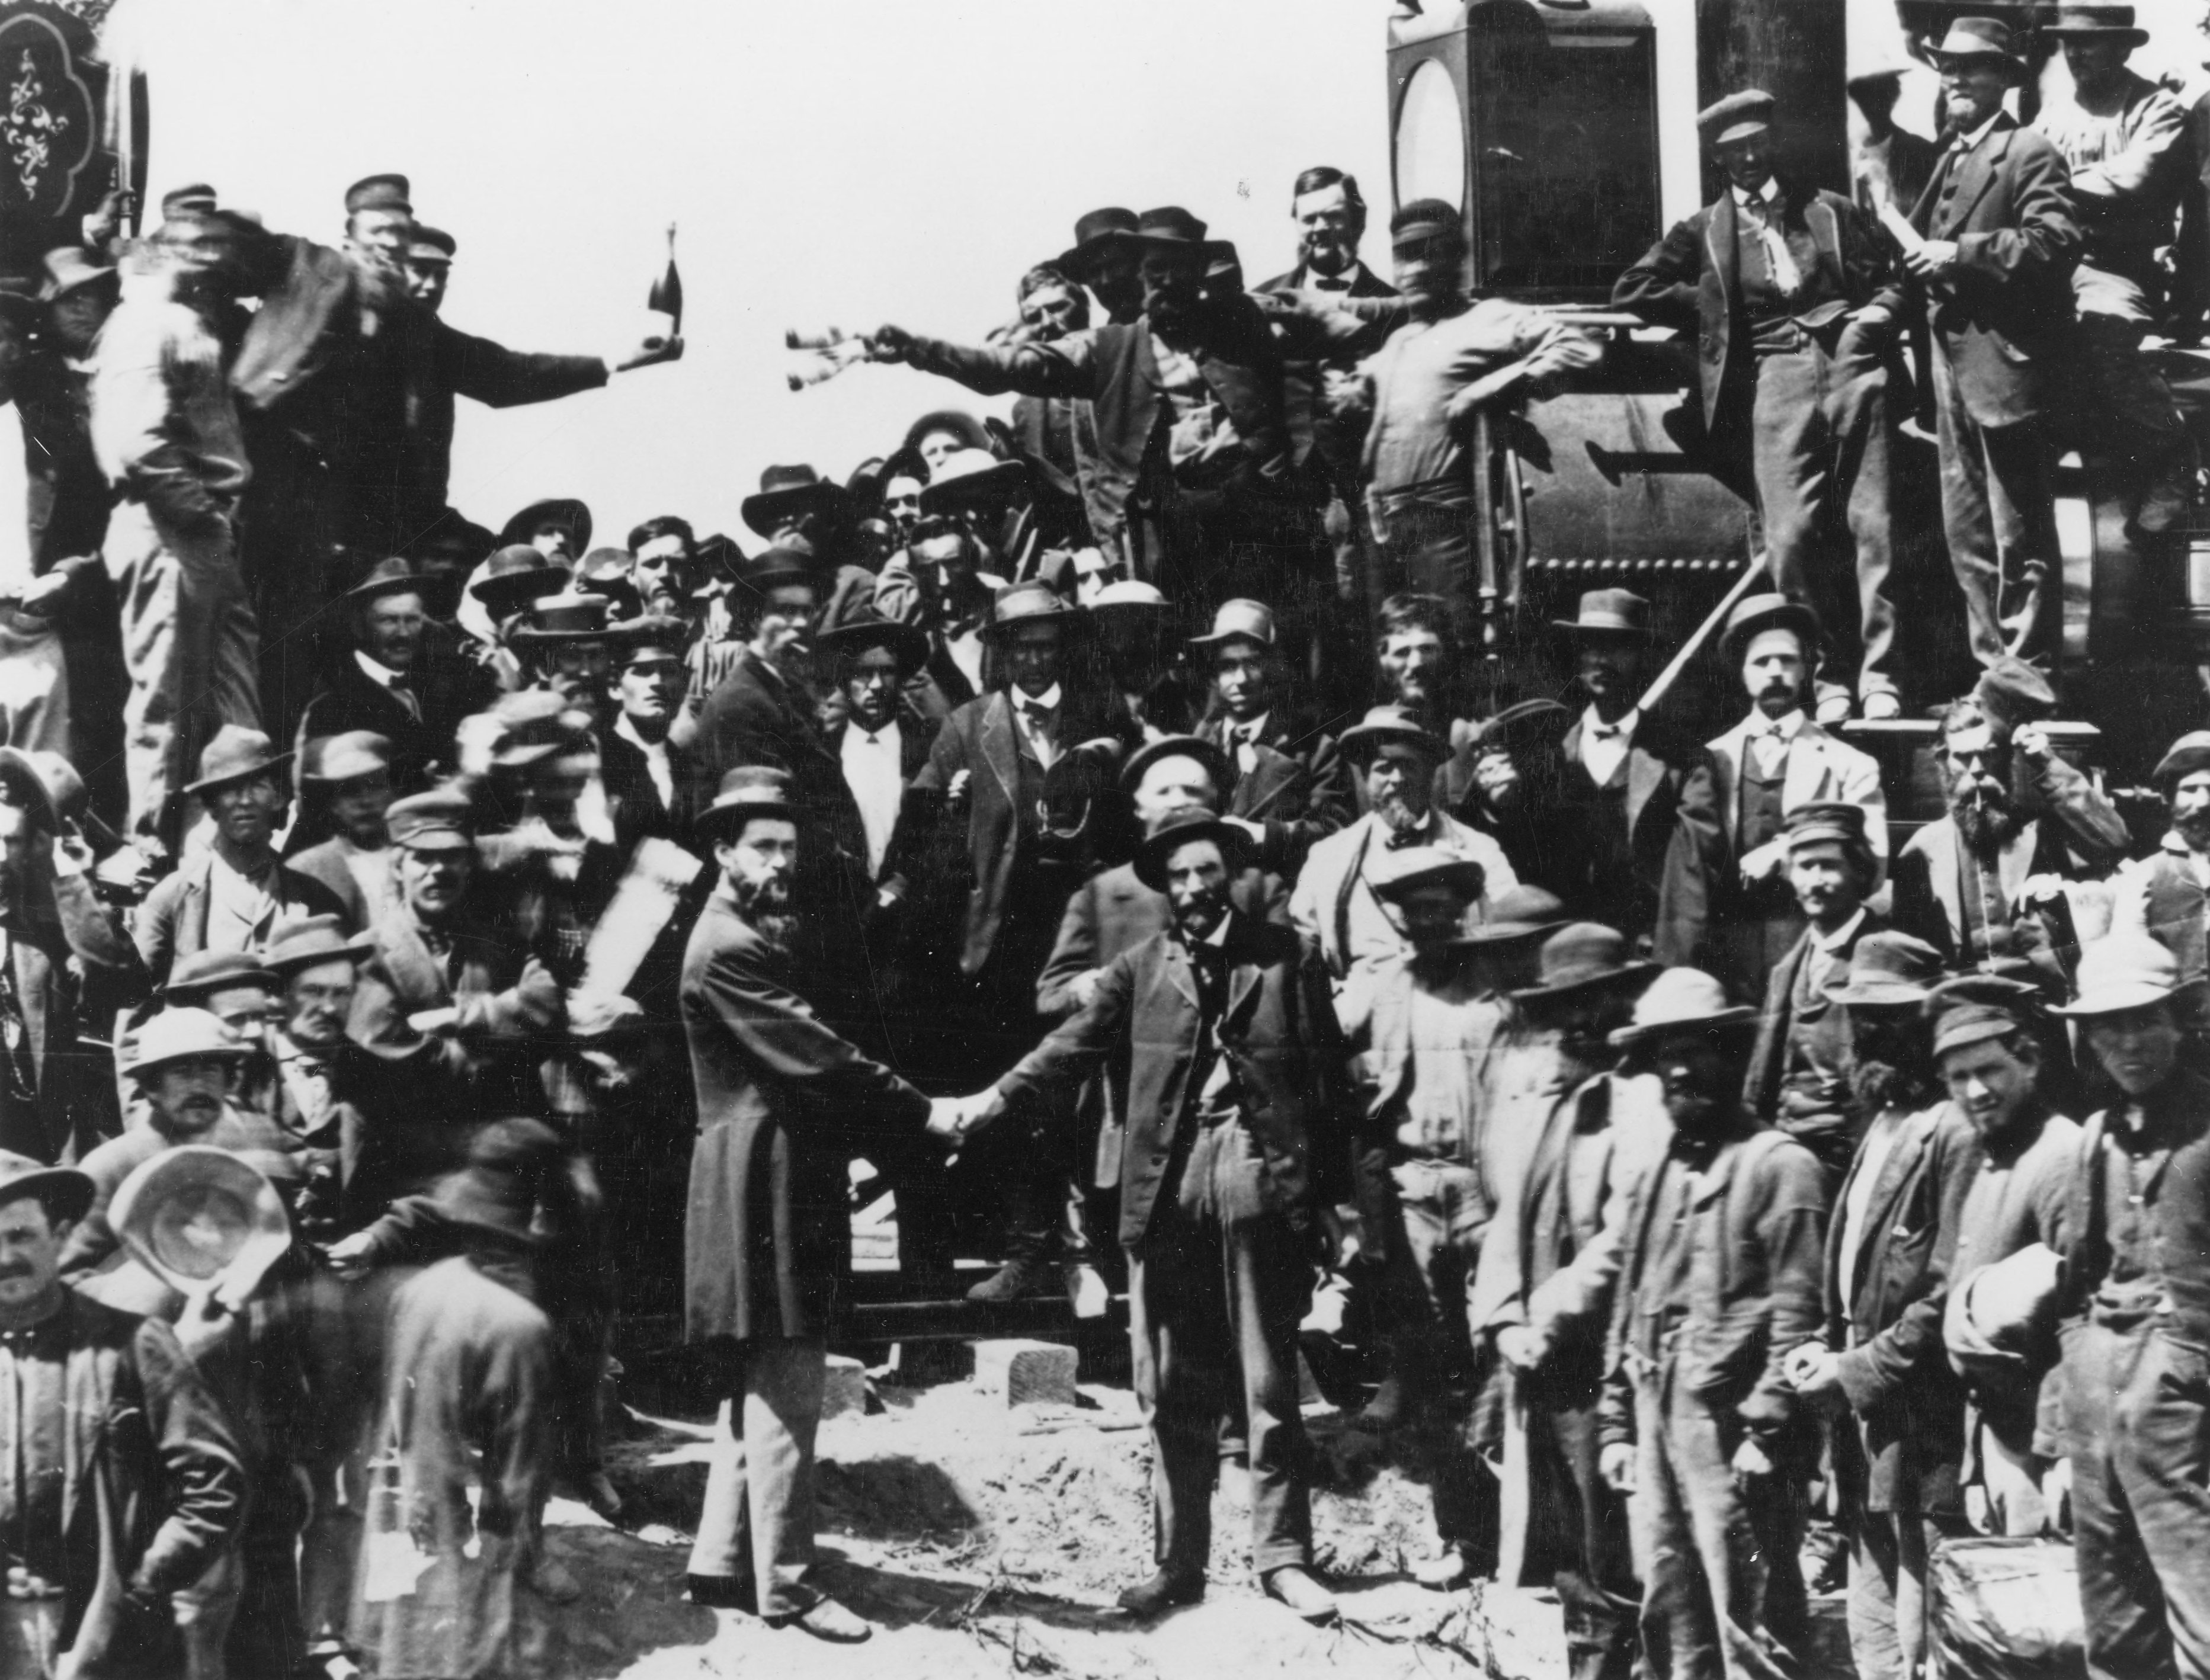 The wedding of the rails took place at Promontory, Utah, on May 10, 1869.